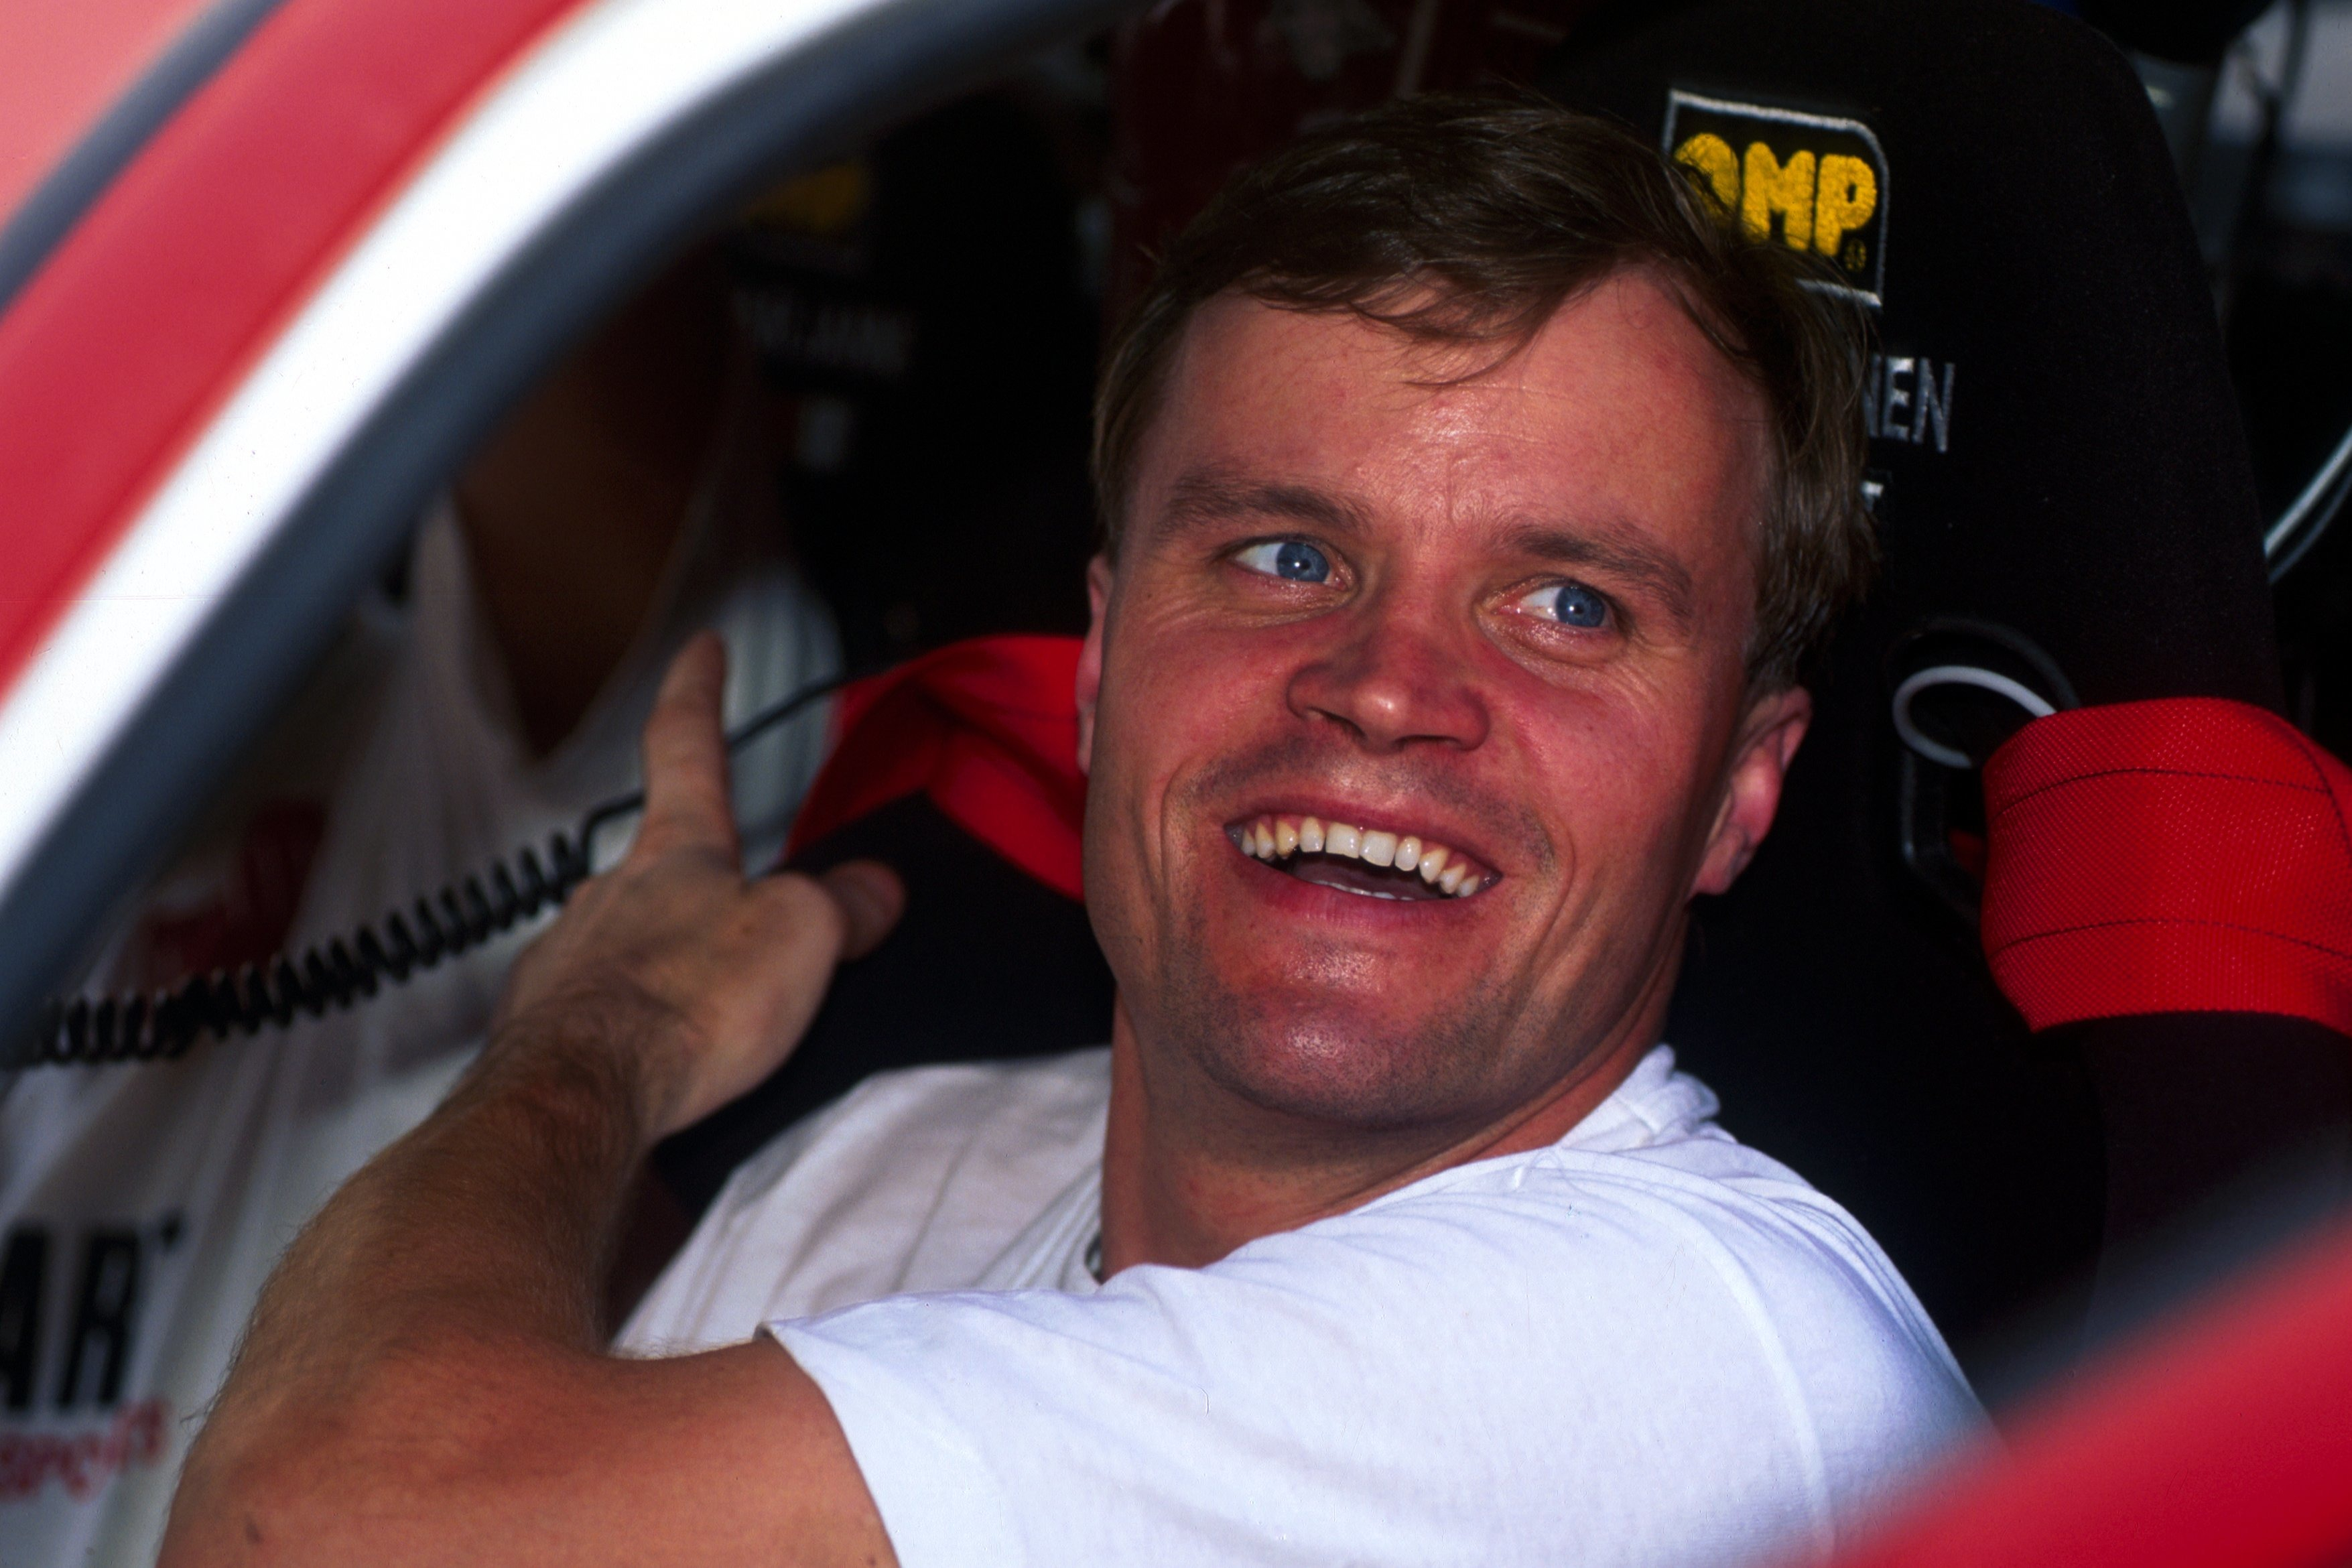 Makinen clinched his first of four world titles in 1996 with two rounds to spare with his fifth victory of the season in Australia